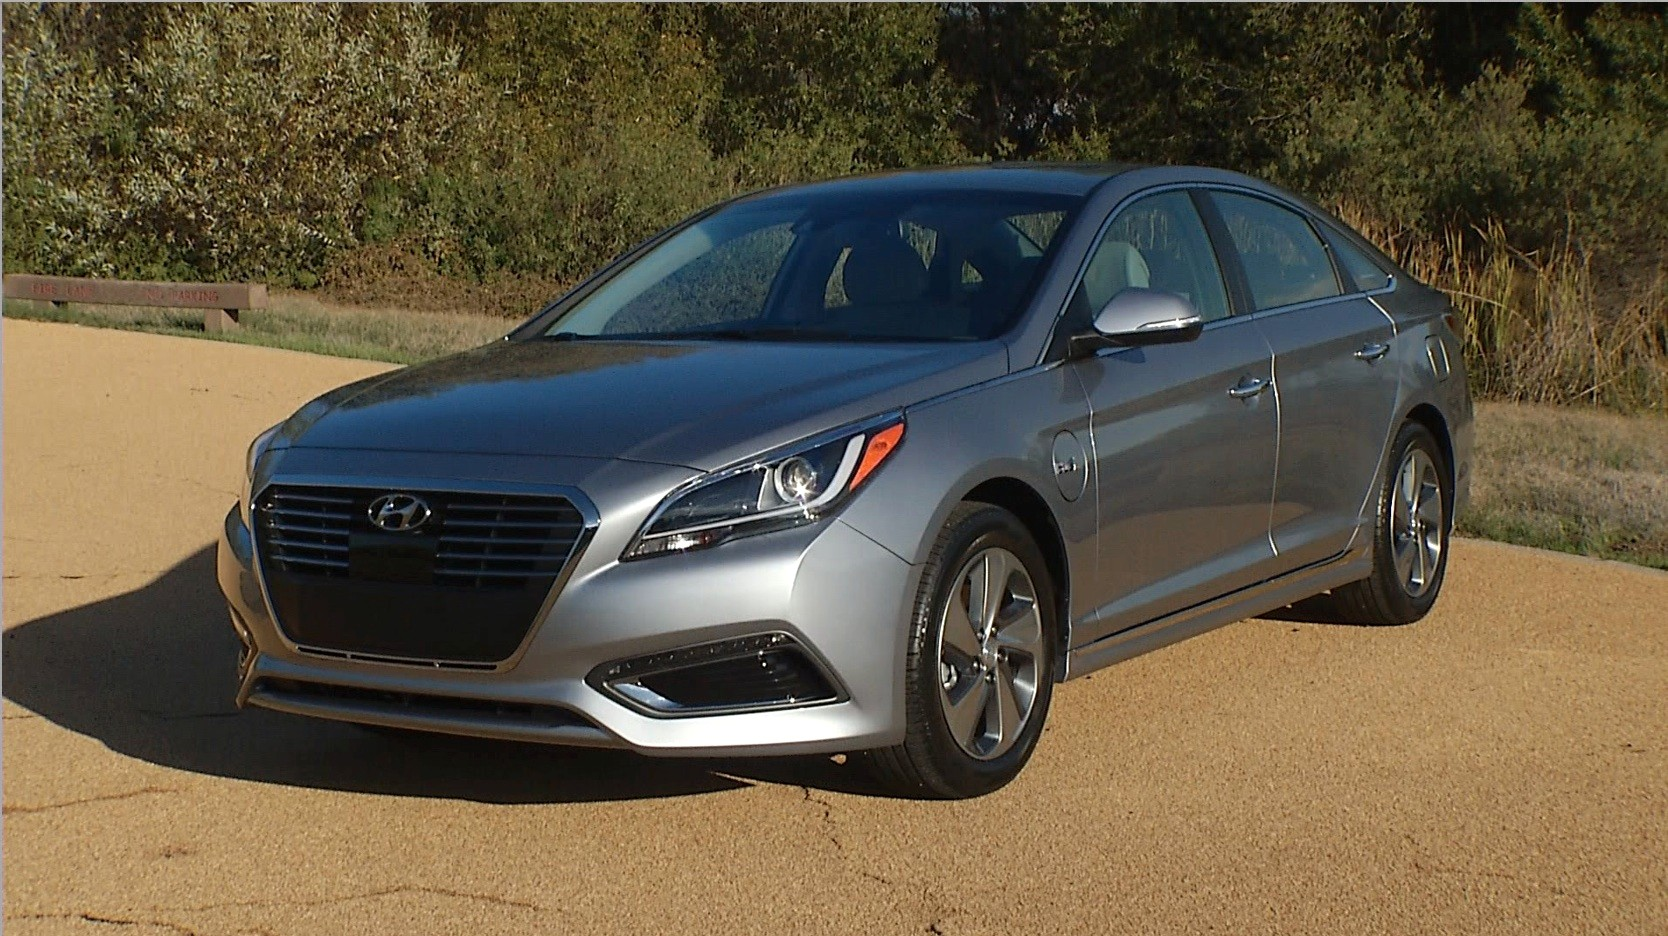 Hyundai's New Electric, Hybrid & Fuel Cell Vehicles